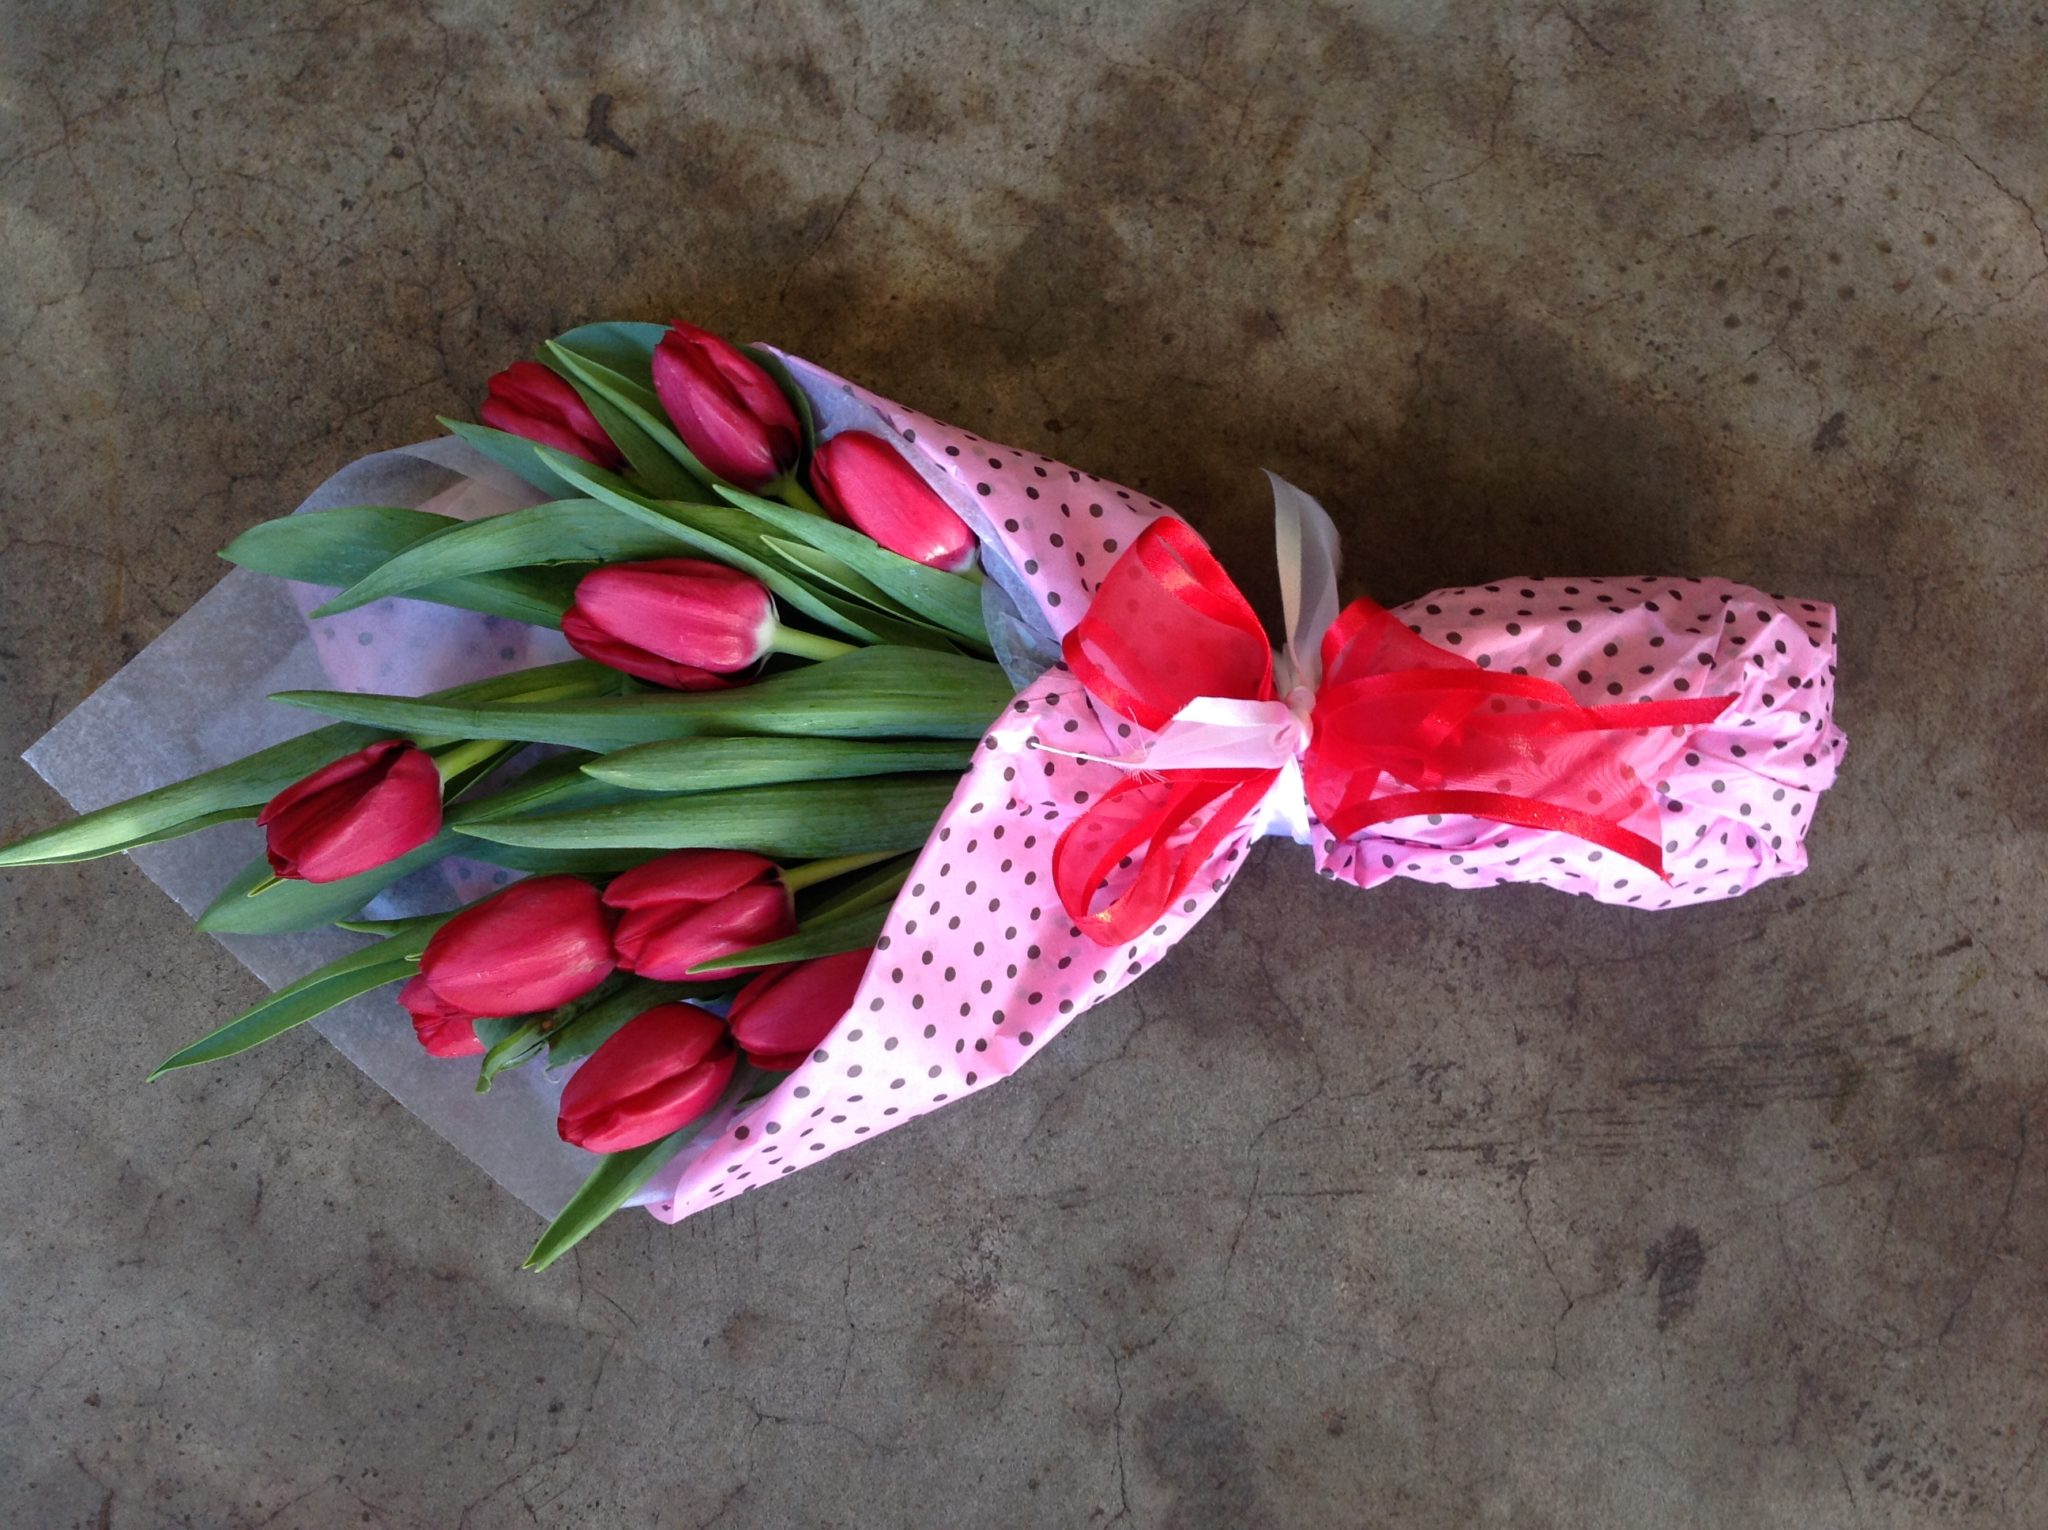 Tulips wrapped